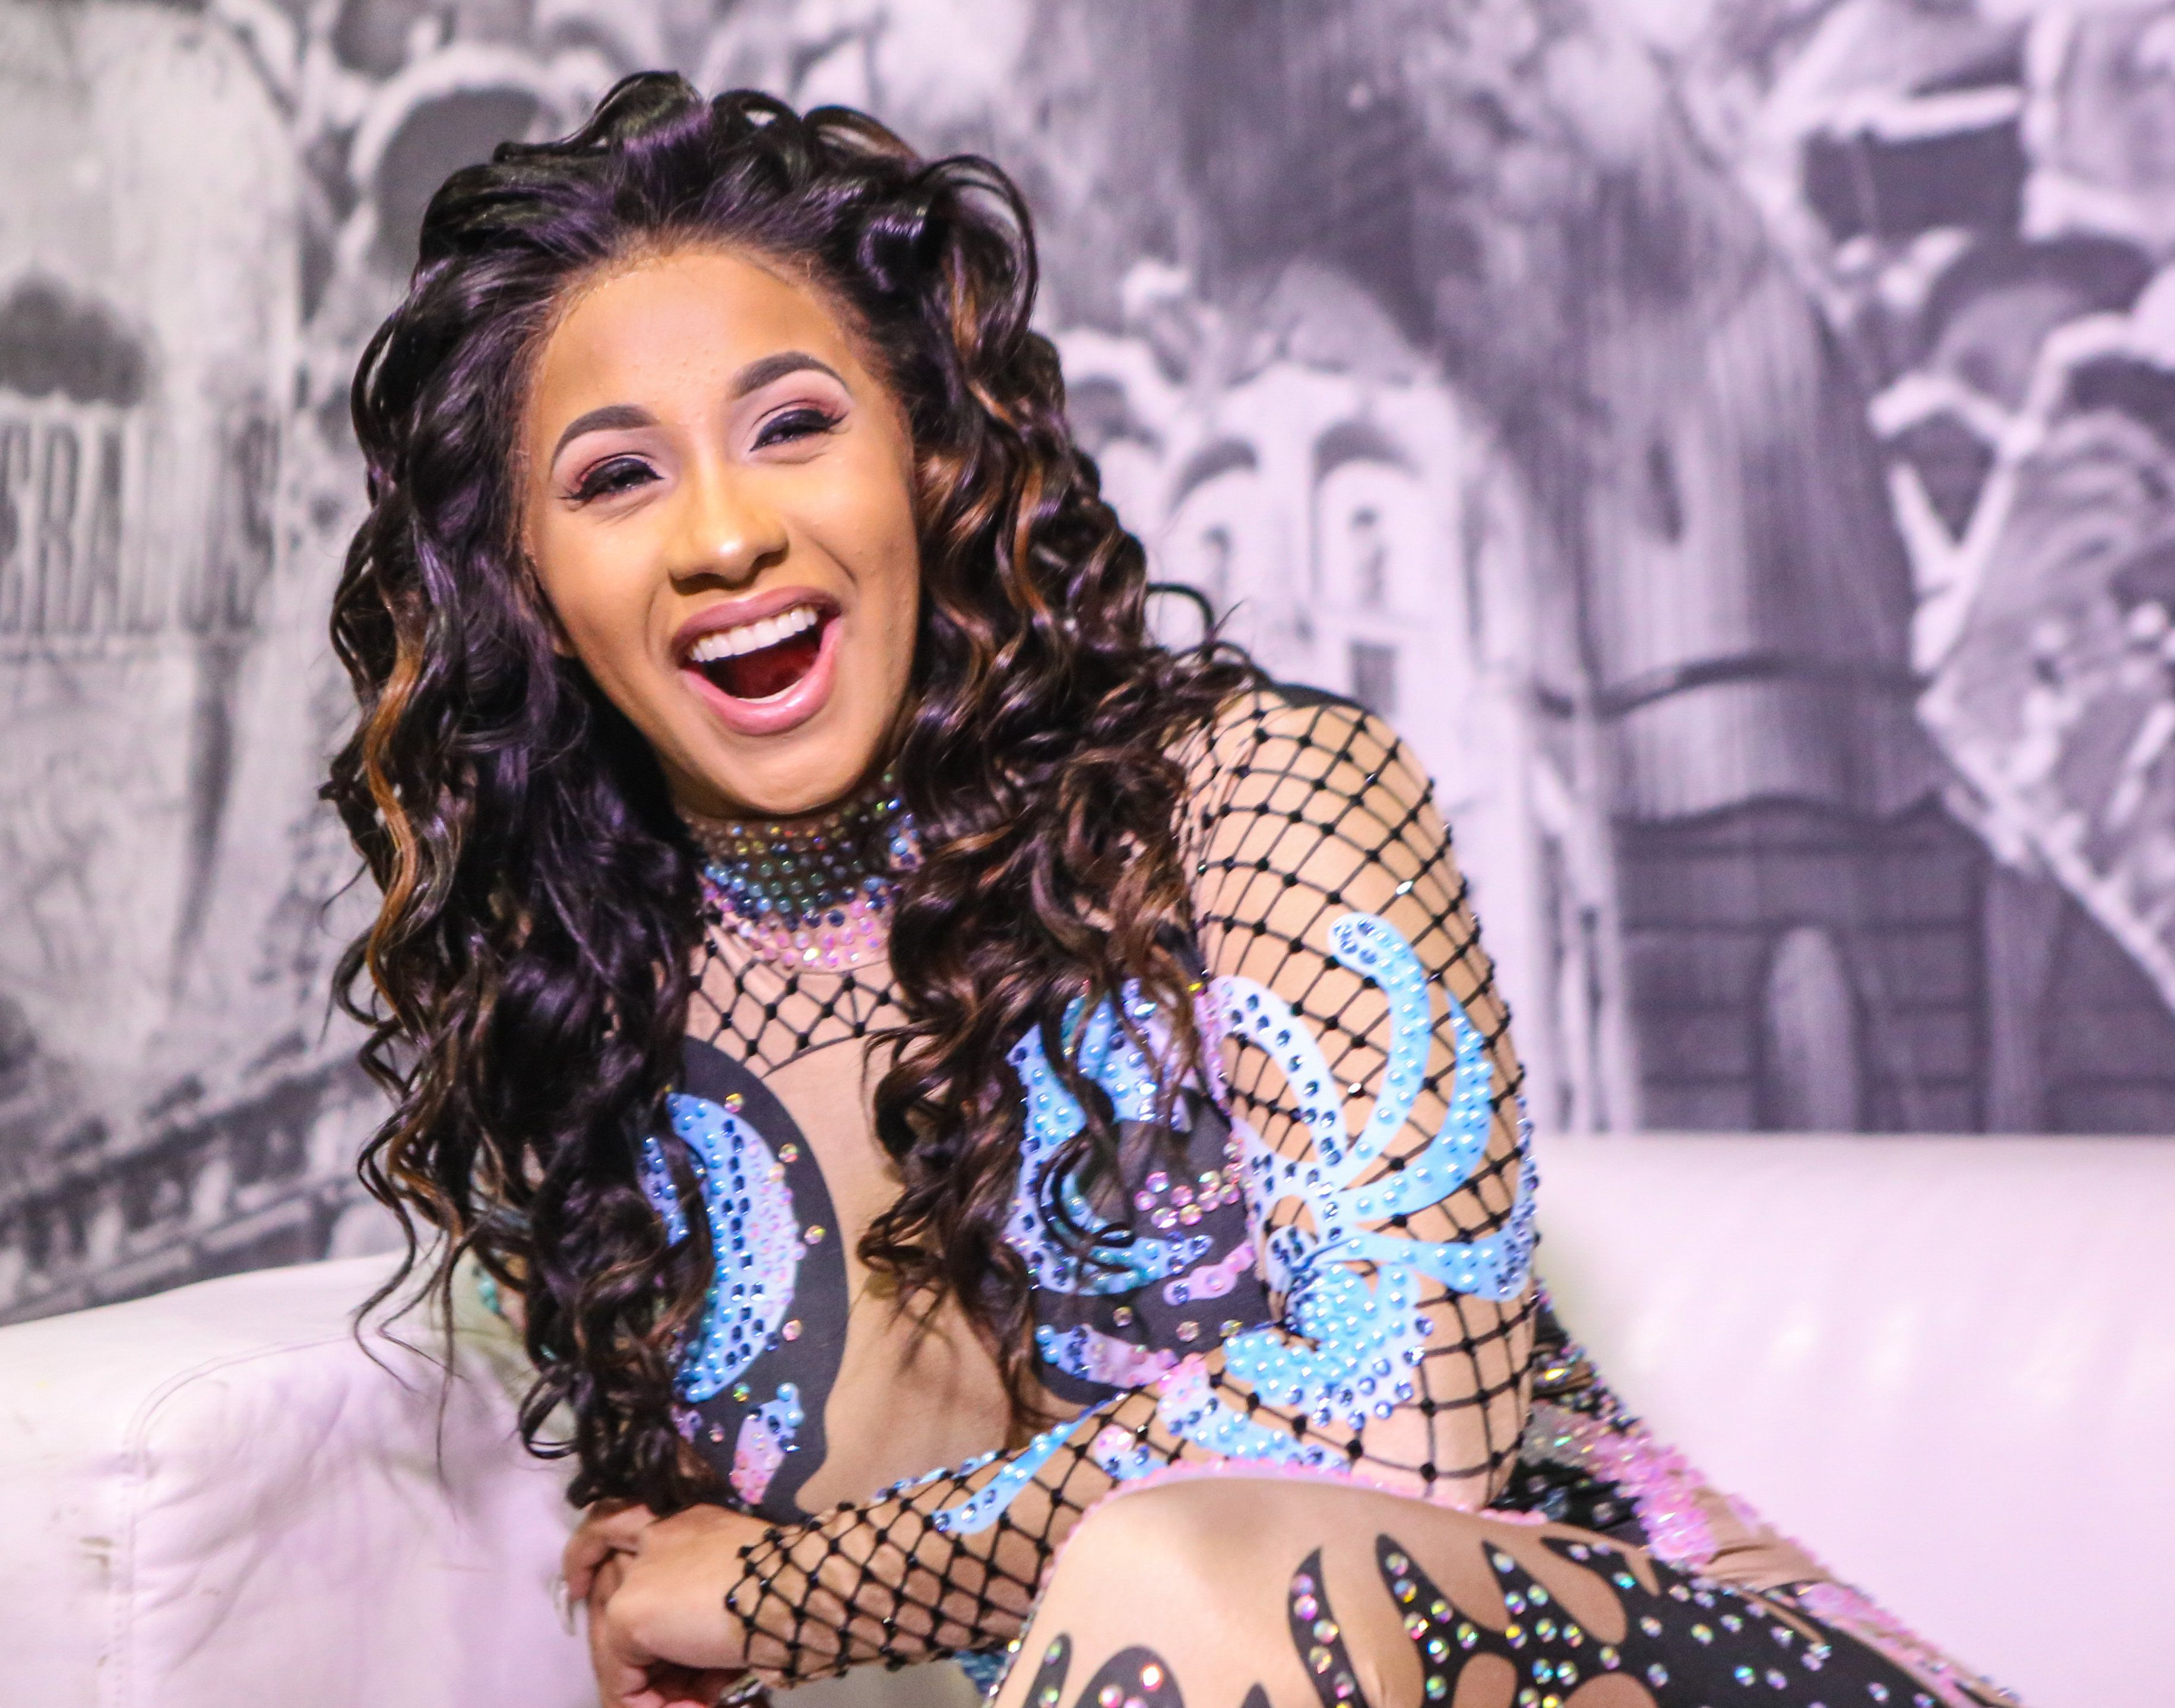 Cardi B Reveals Outrageous Wedding Details